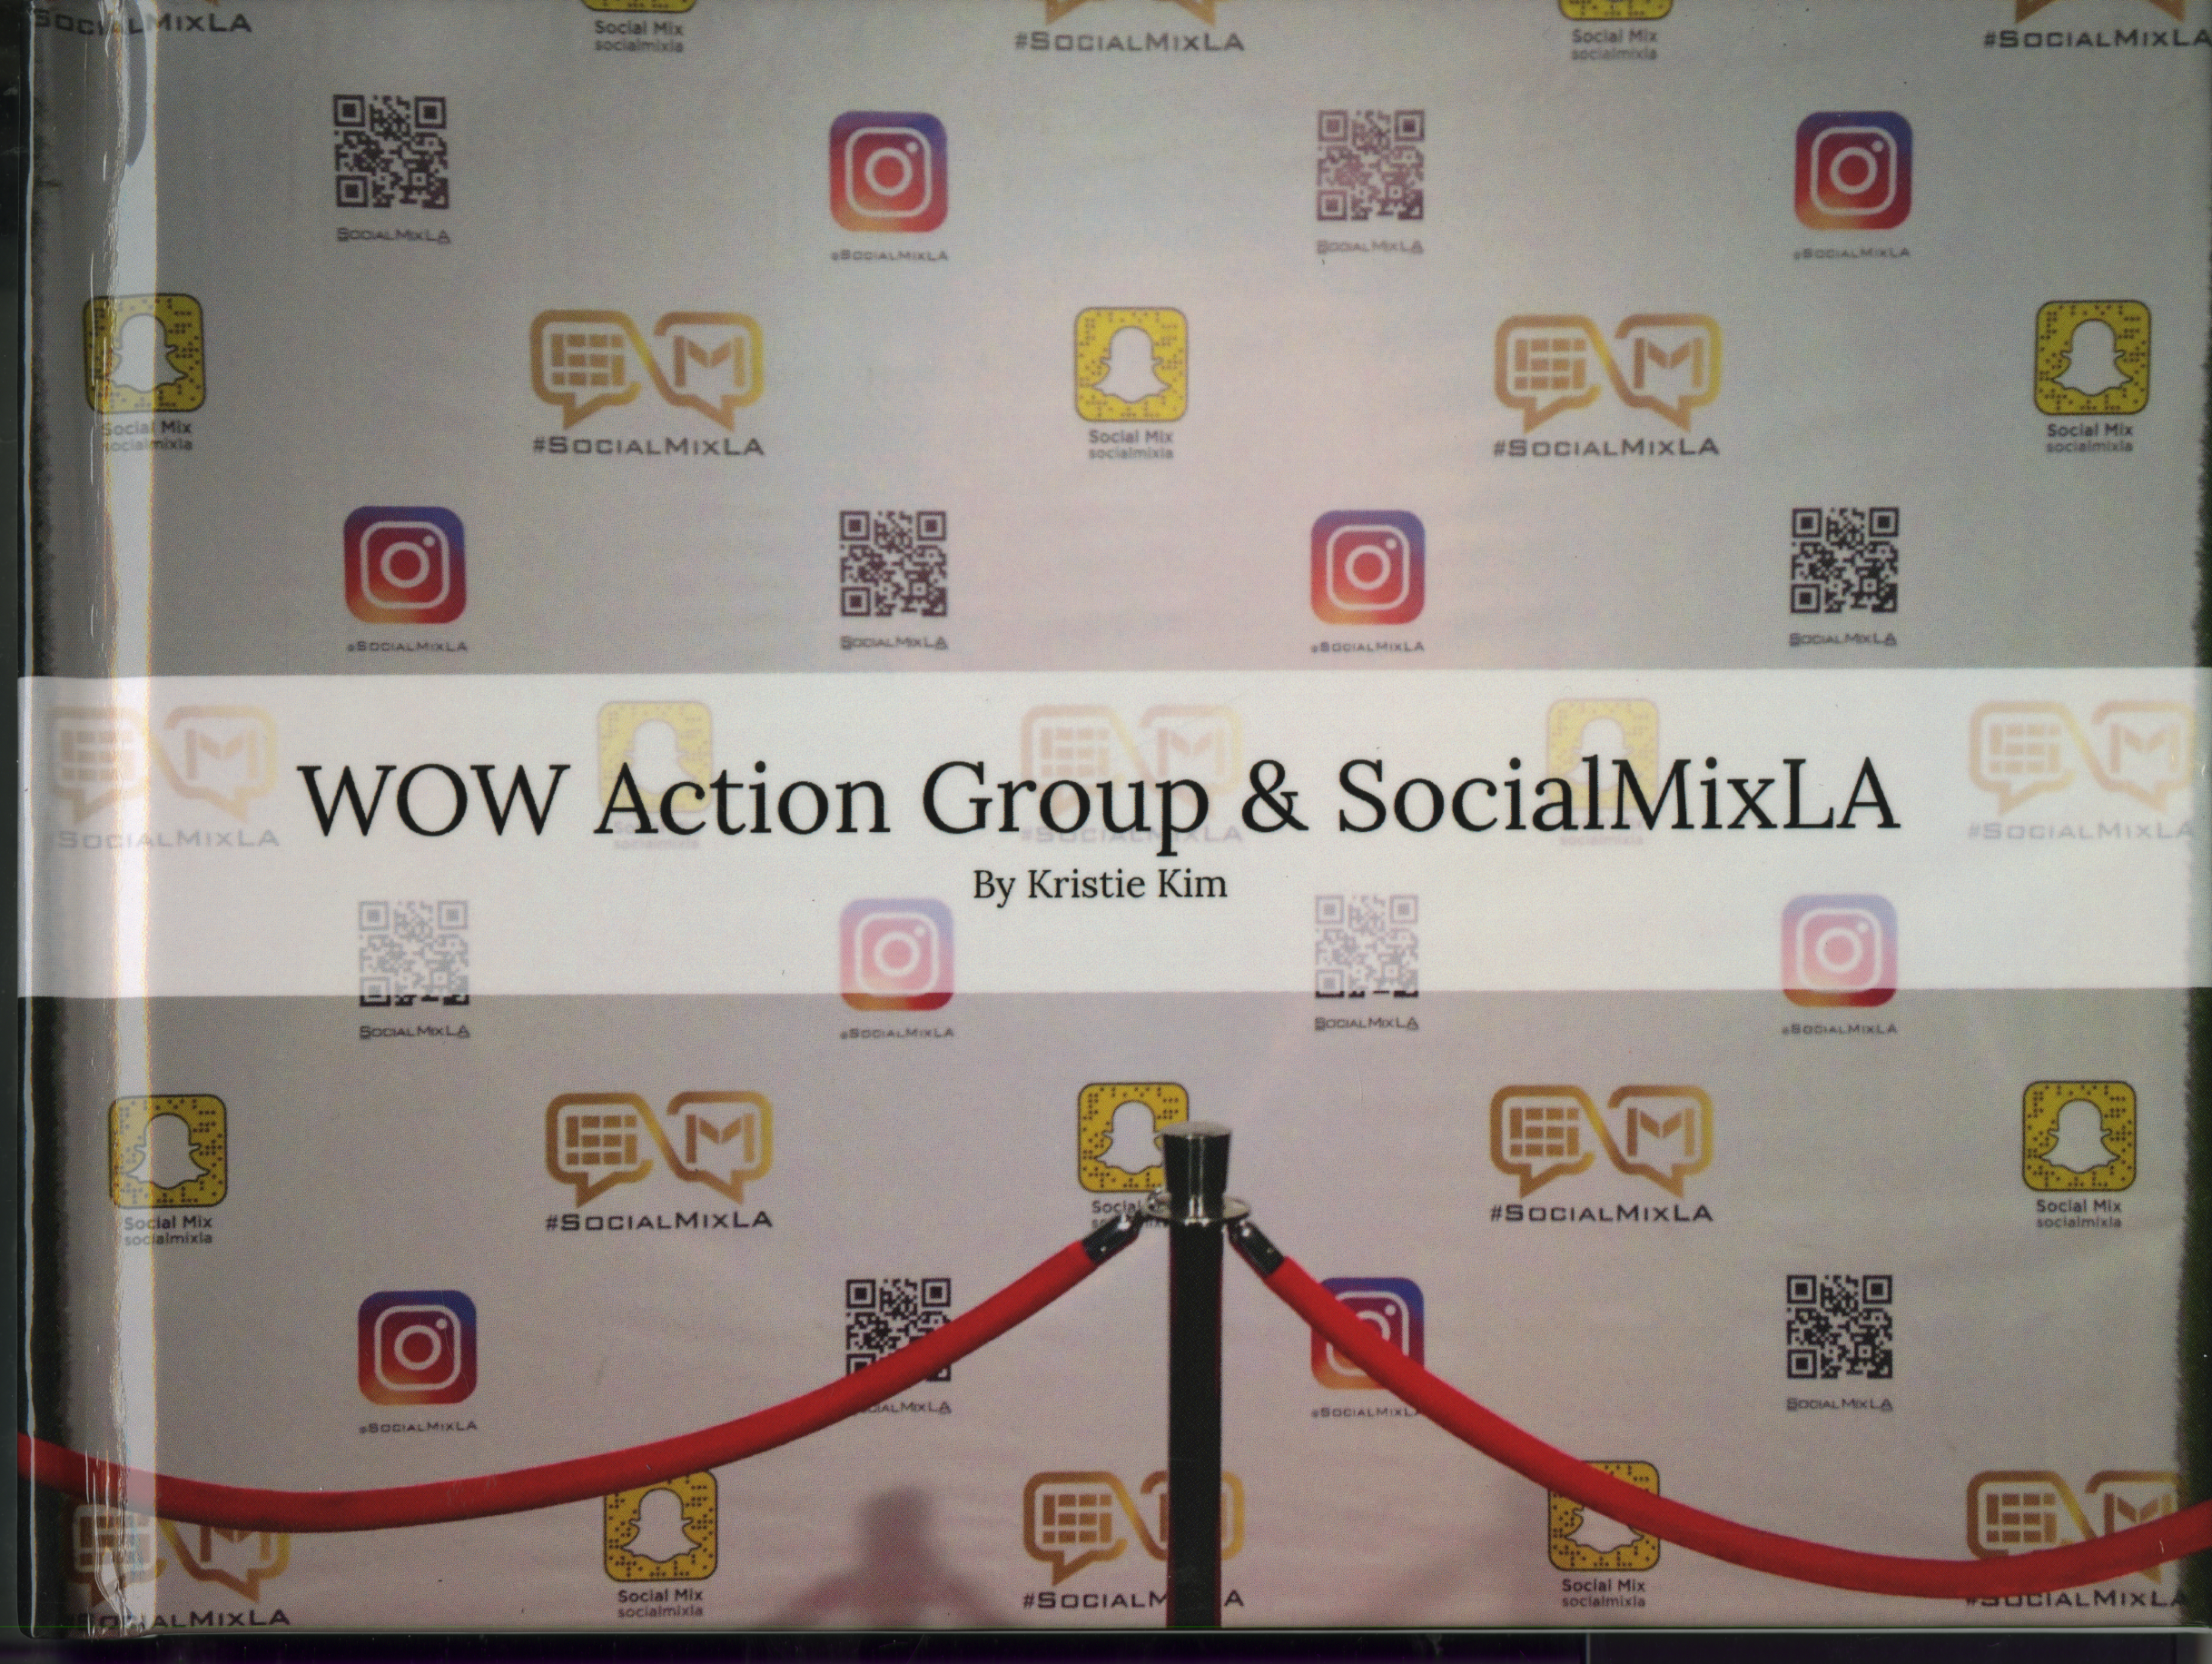 WOW Action Group & SocialMixLA